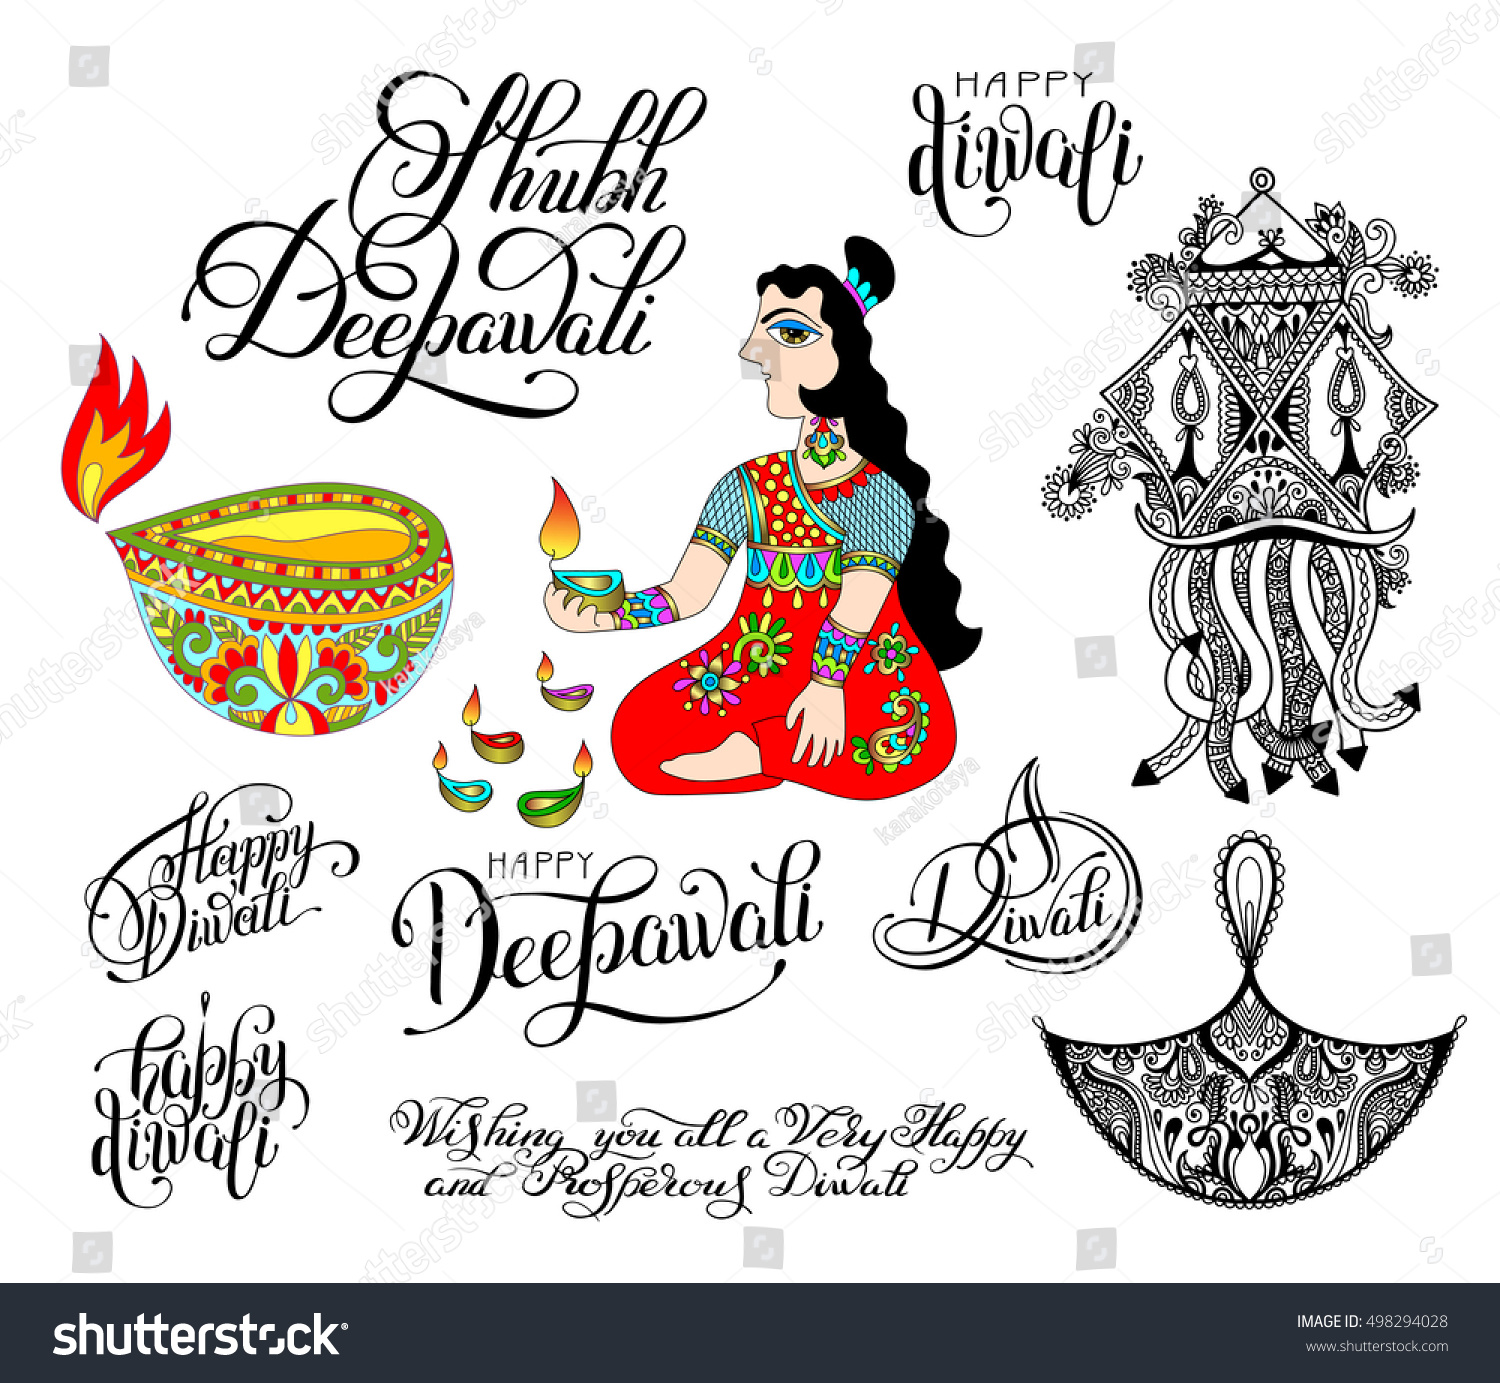 Set of black and white hand drawing design element and lettering inscriptions for diwali celebration